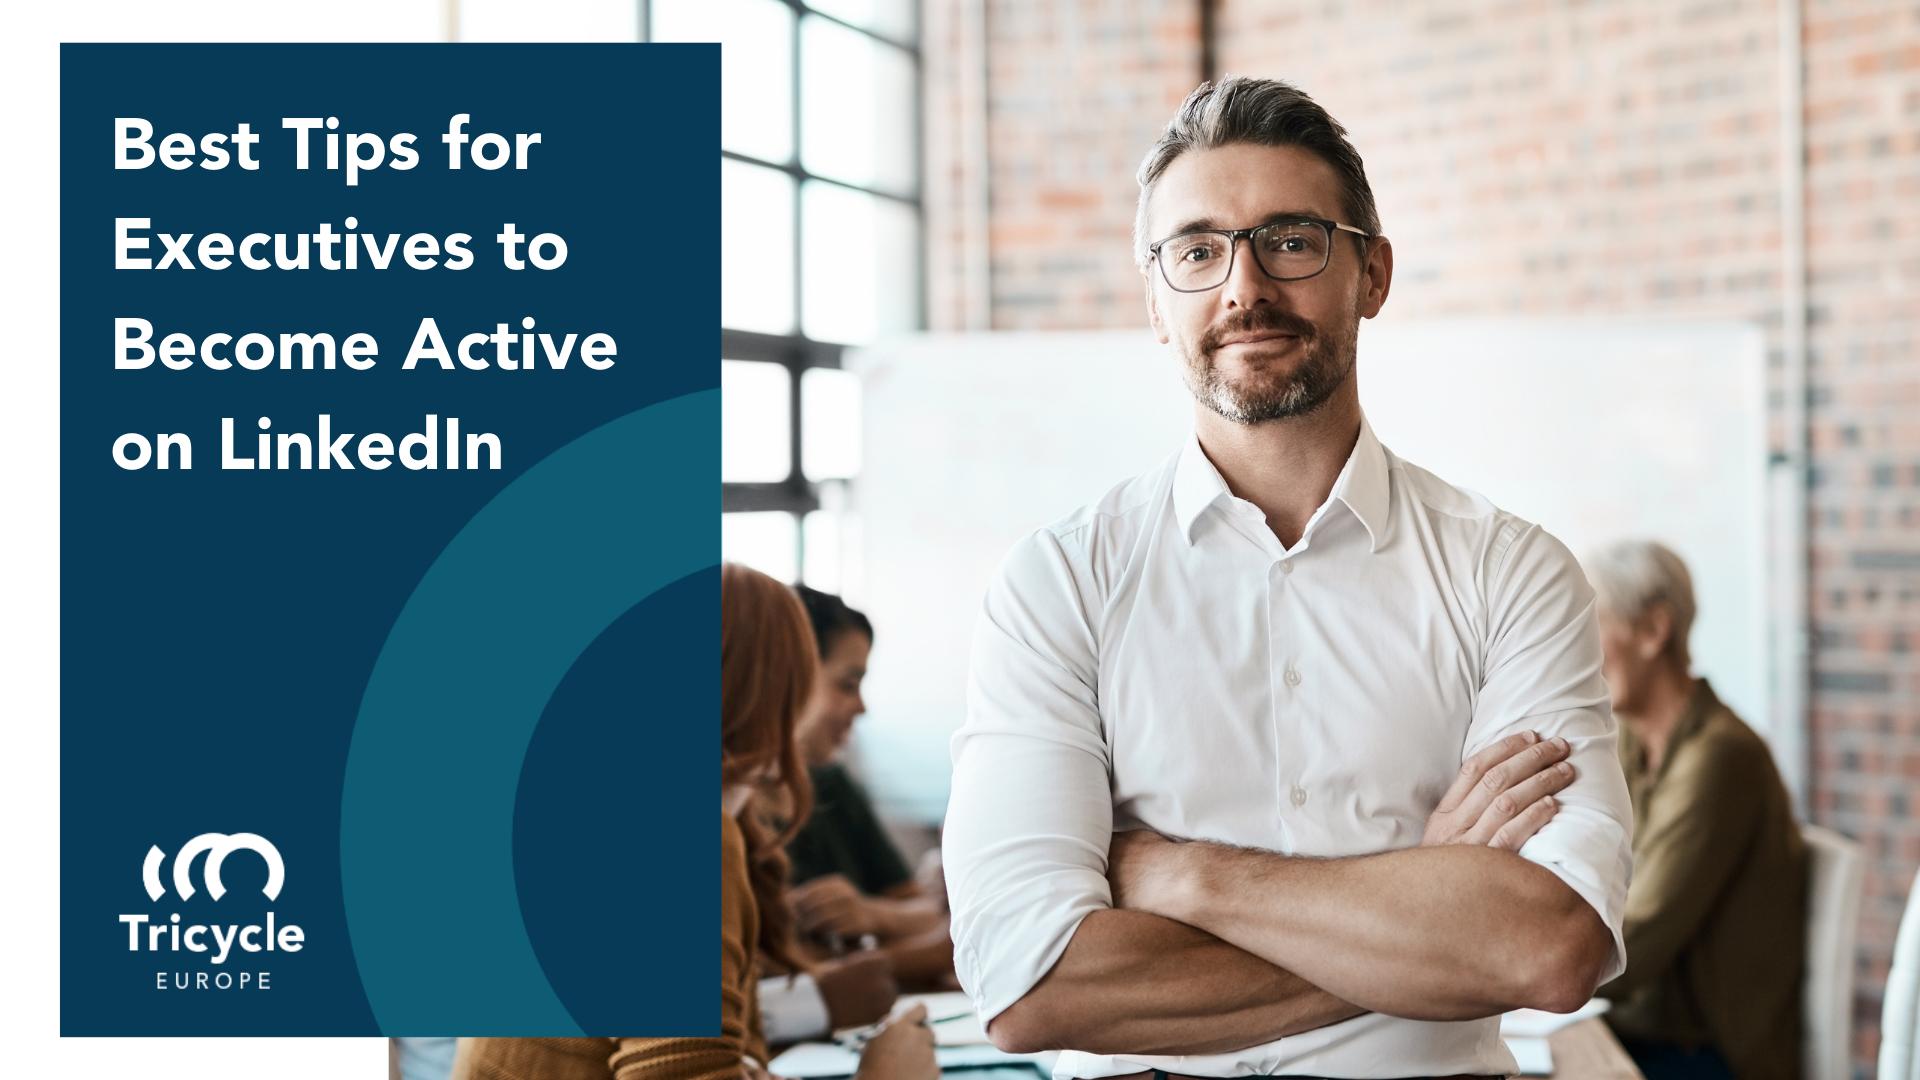 Best Tips for Executives to Become Active on LinkedIn